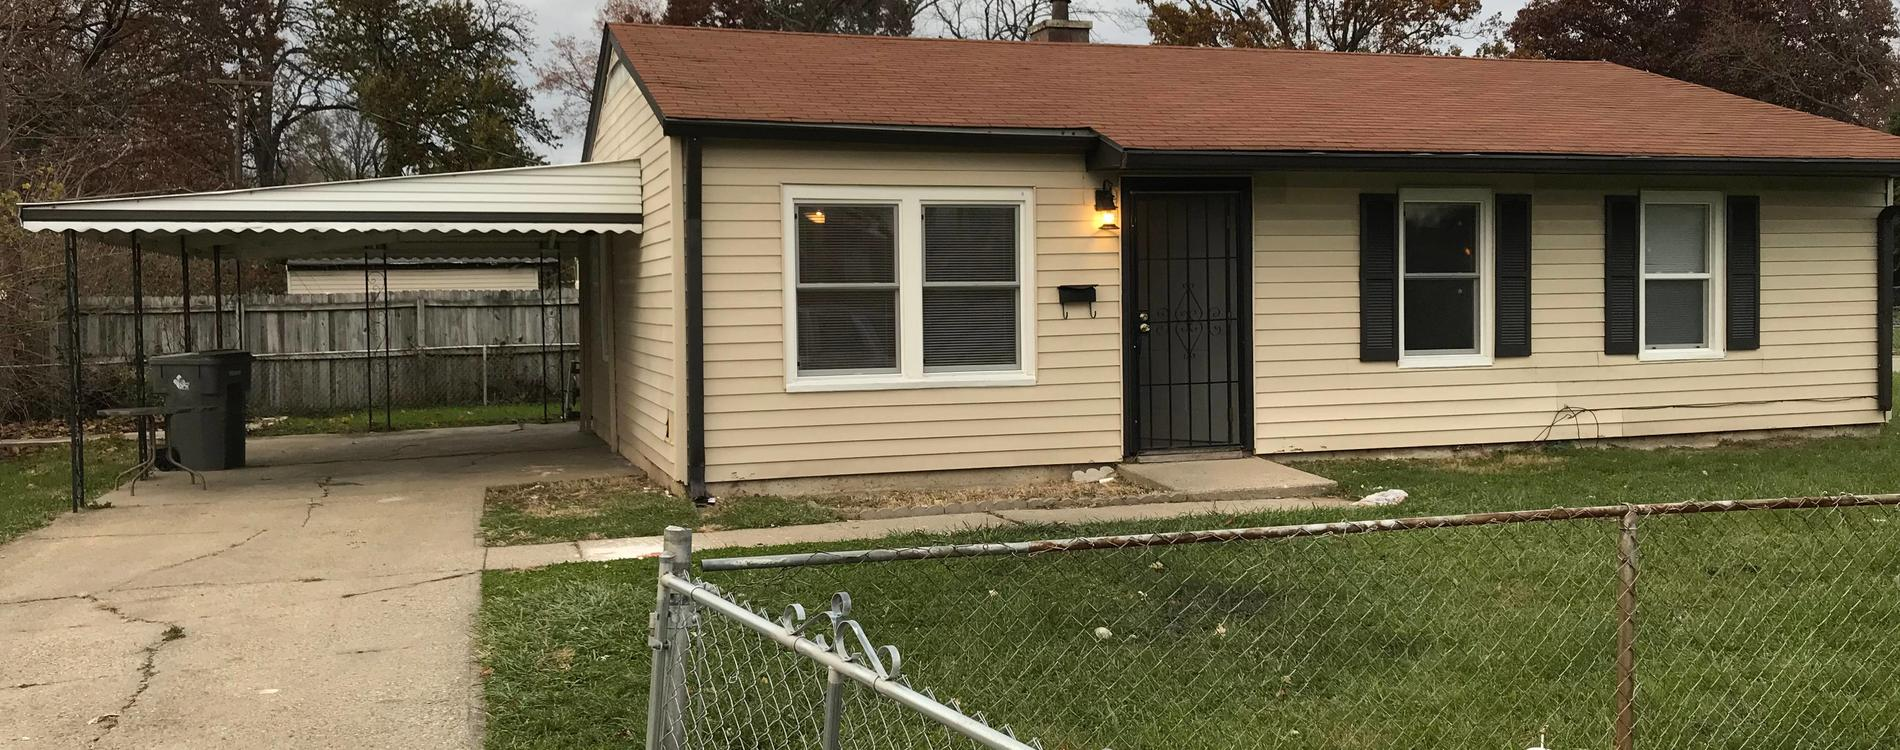 3302 N Butler Ave, Indianapolis, IN 46218   Granger Brown